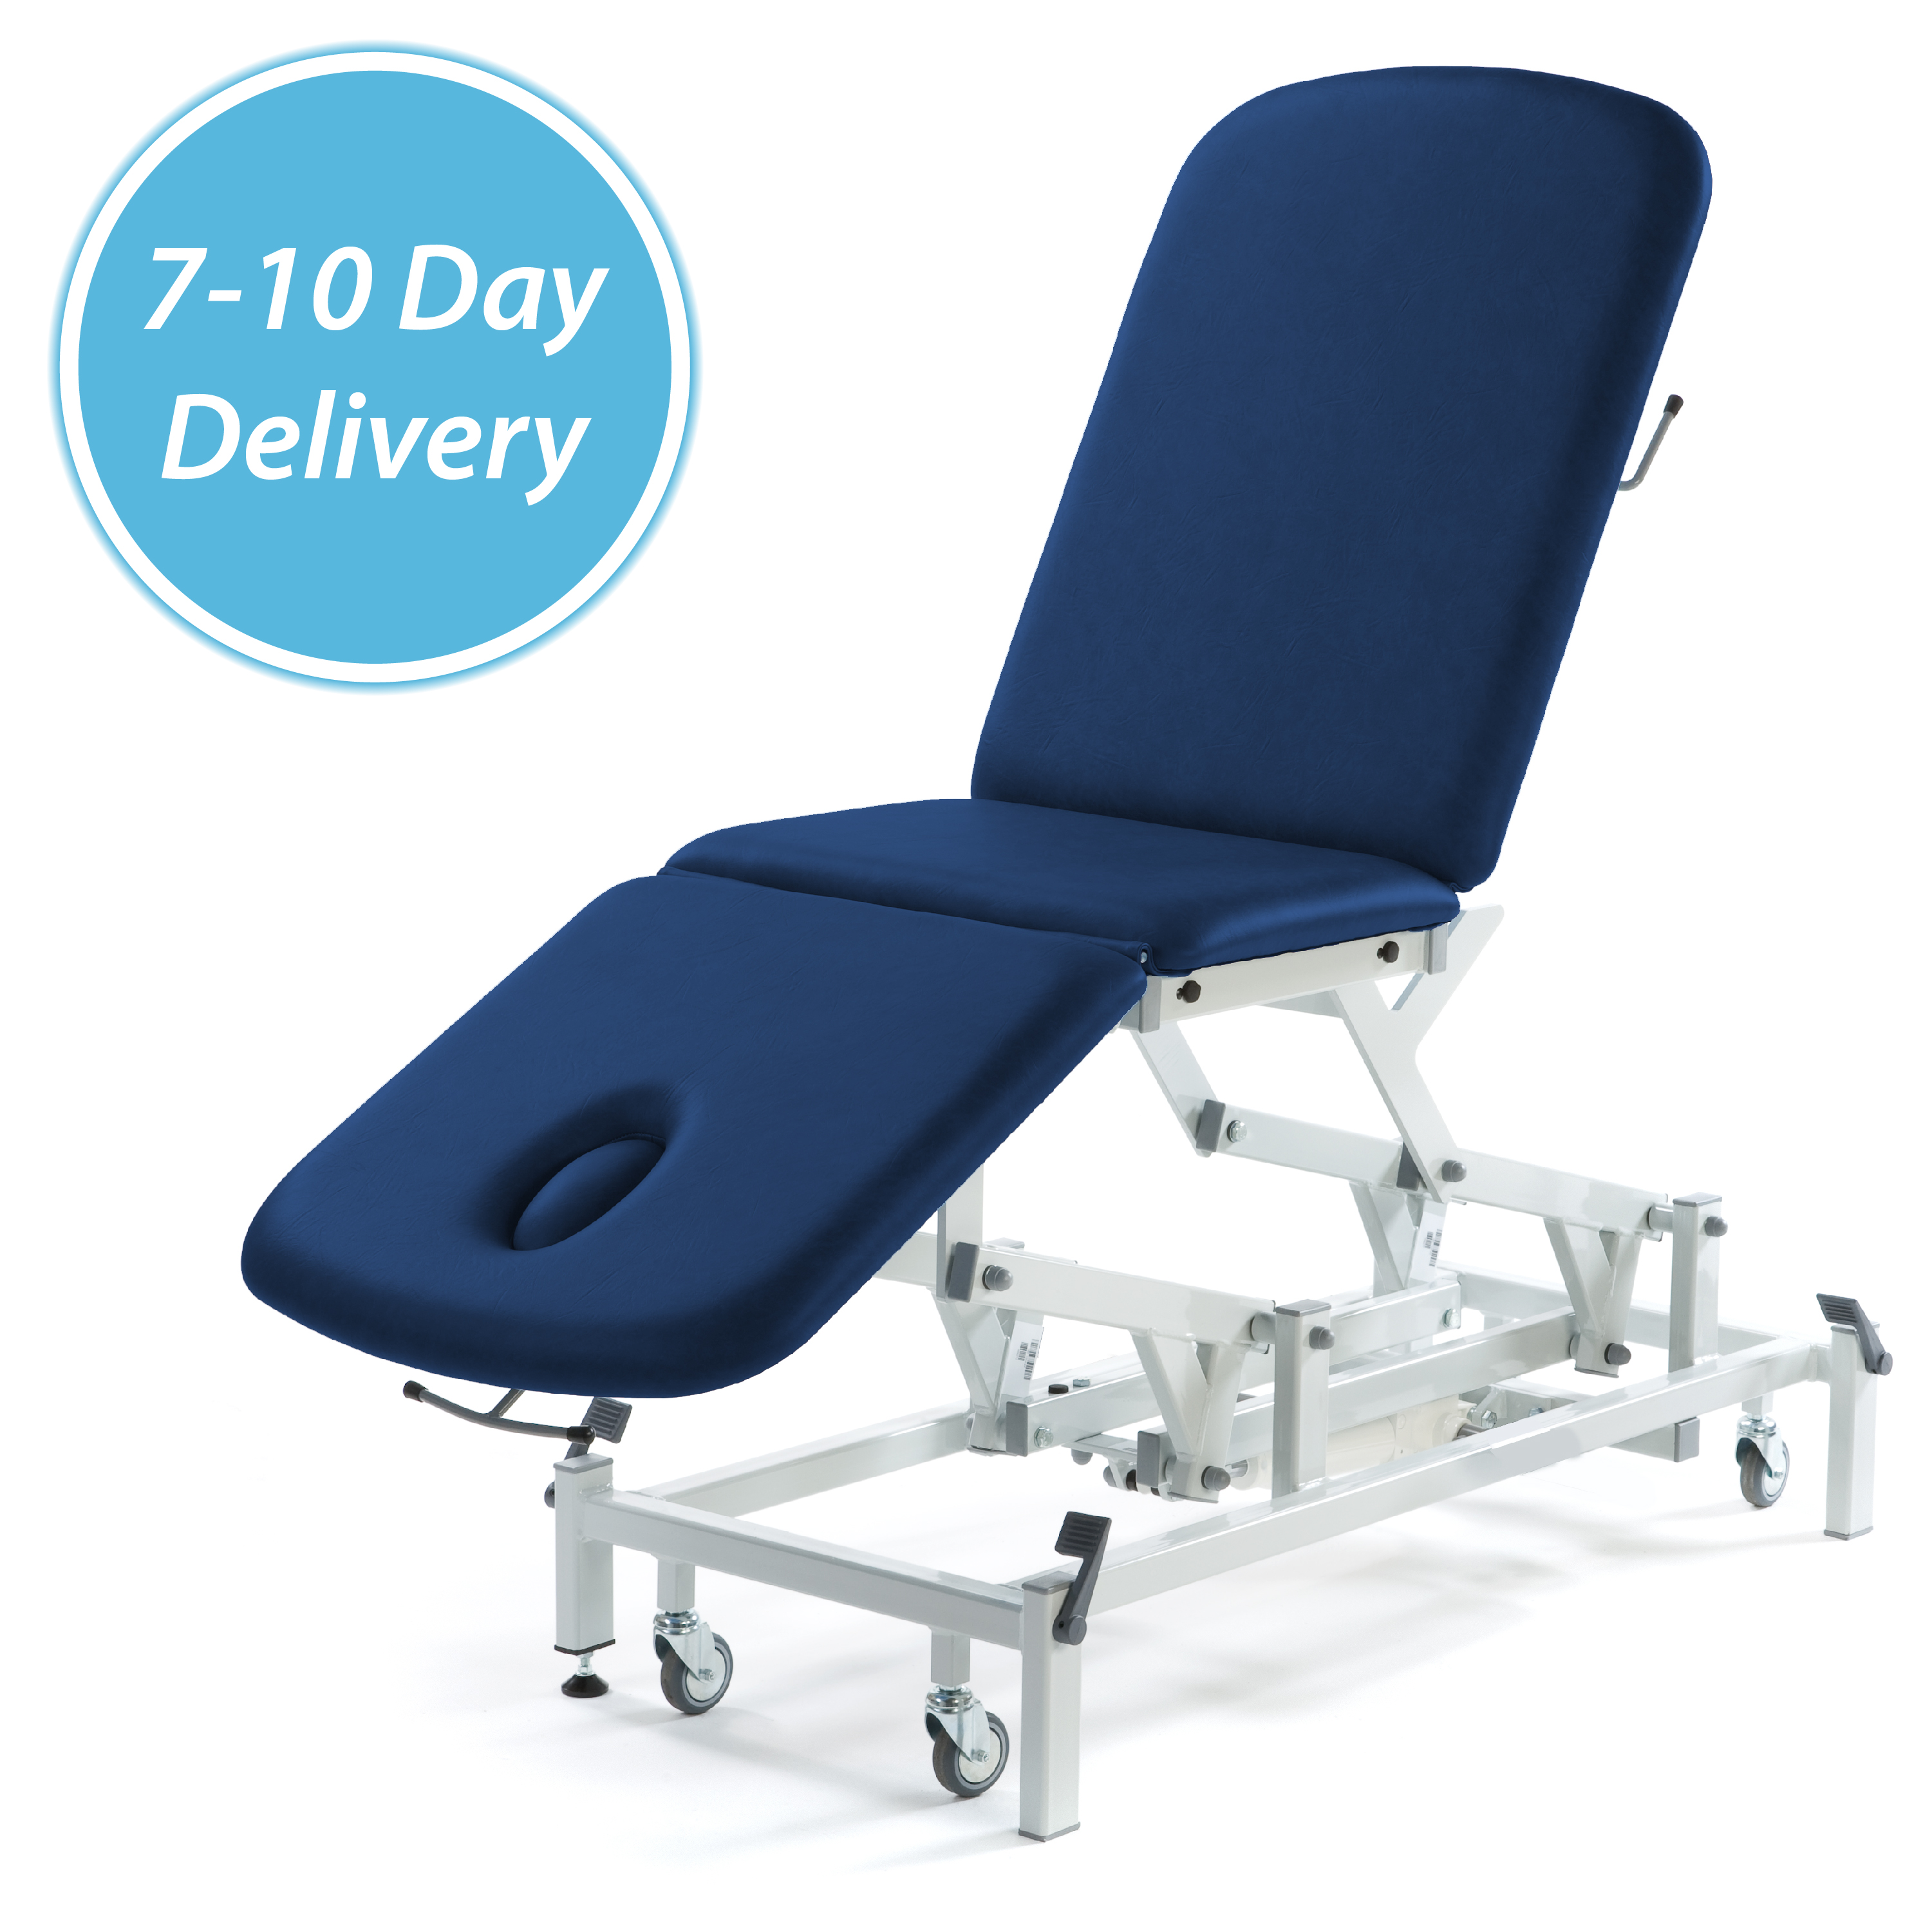 7 10 Day Lead Time 3 Section Therapy Couch Seers